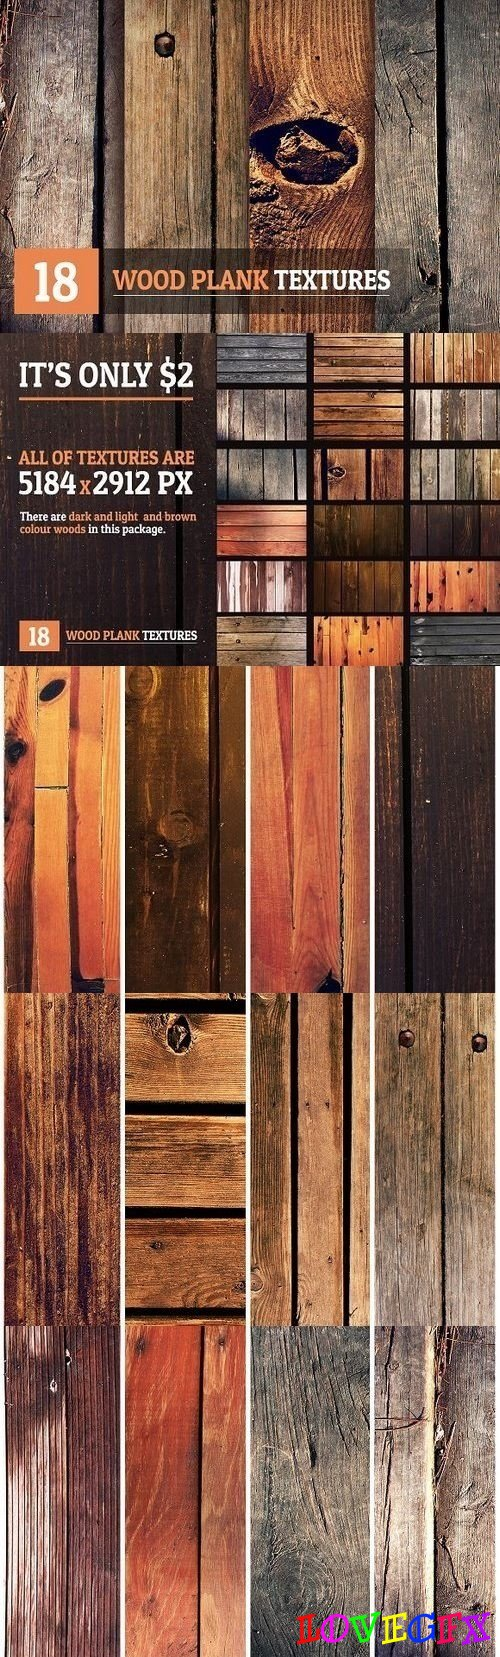 18 Wood Plank Textures - 1317717